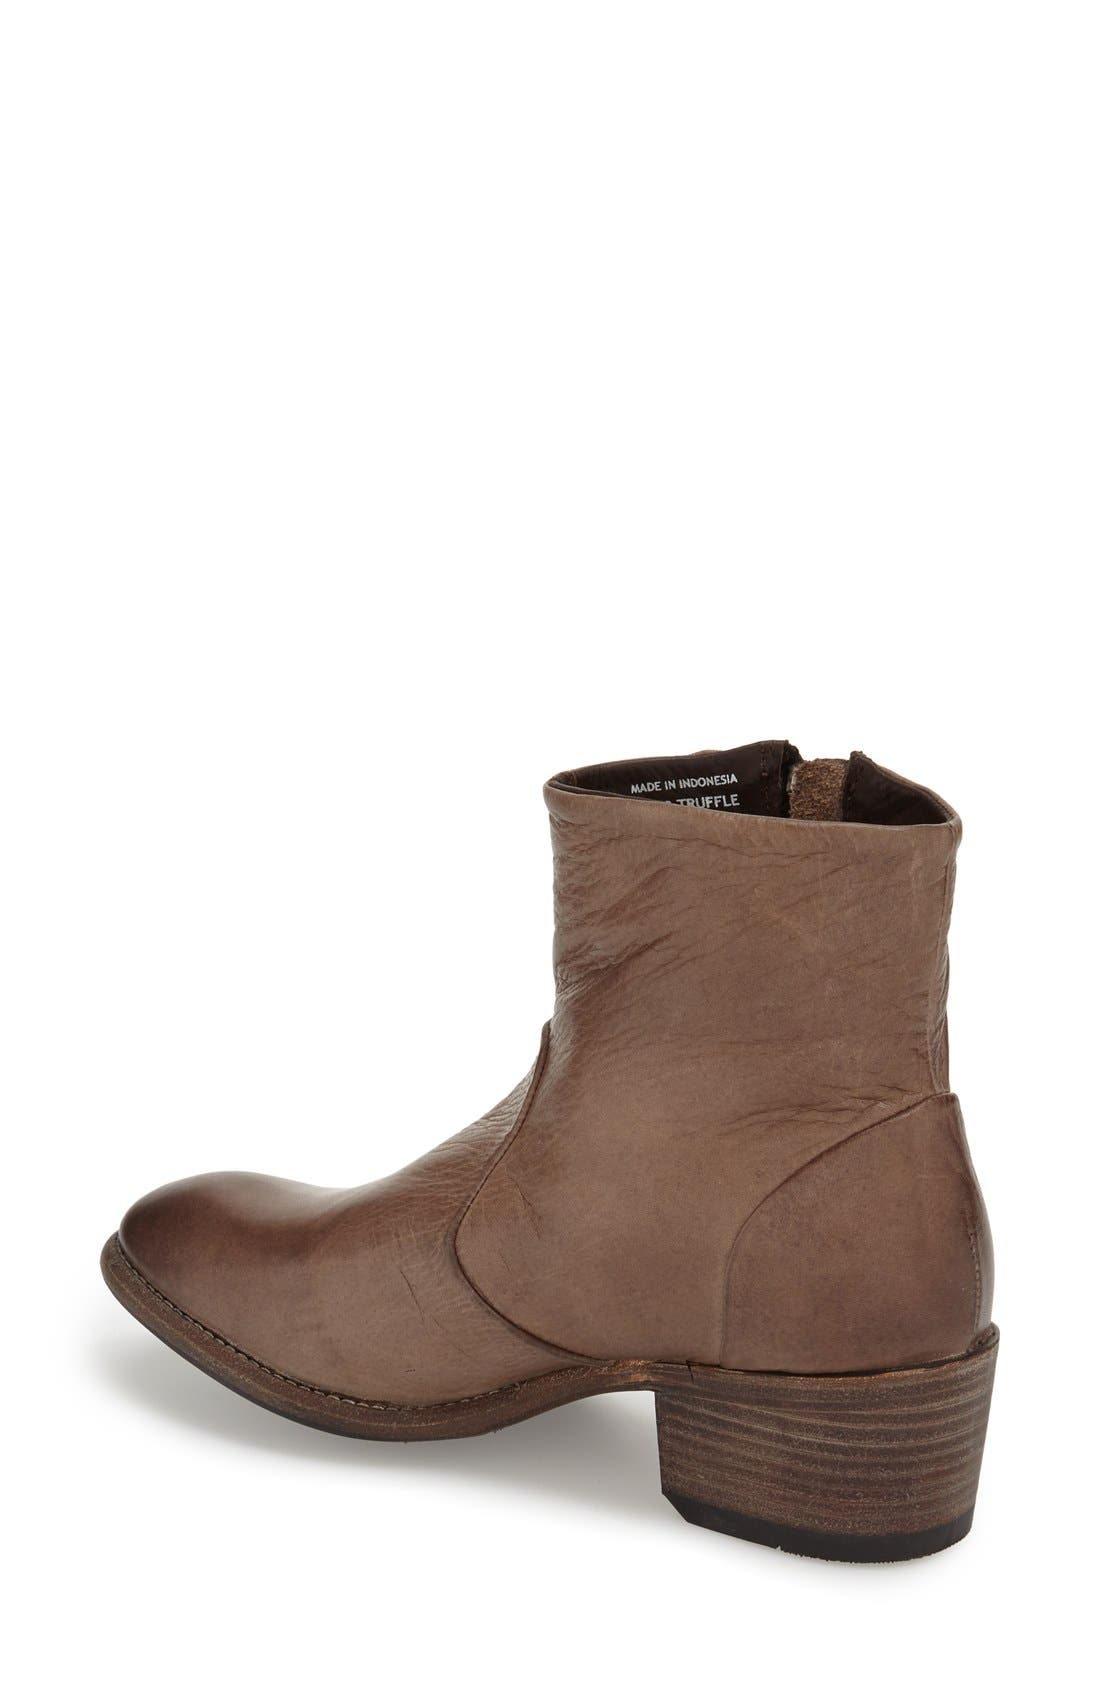 Alternate Image 2  - Blackstone 'KL89' Bootie (Women)